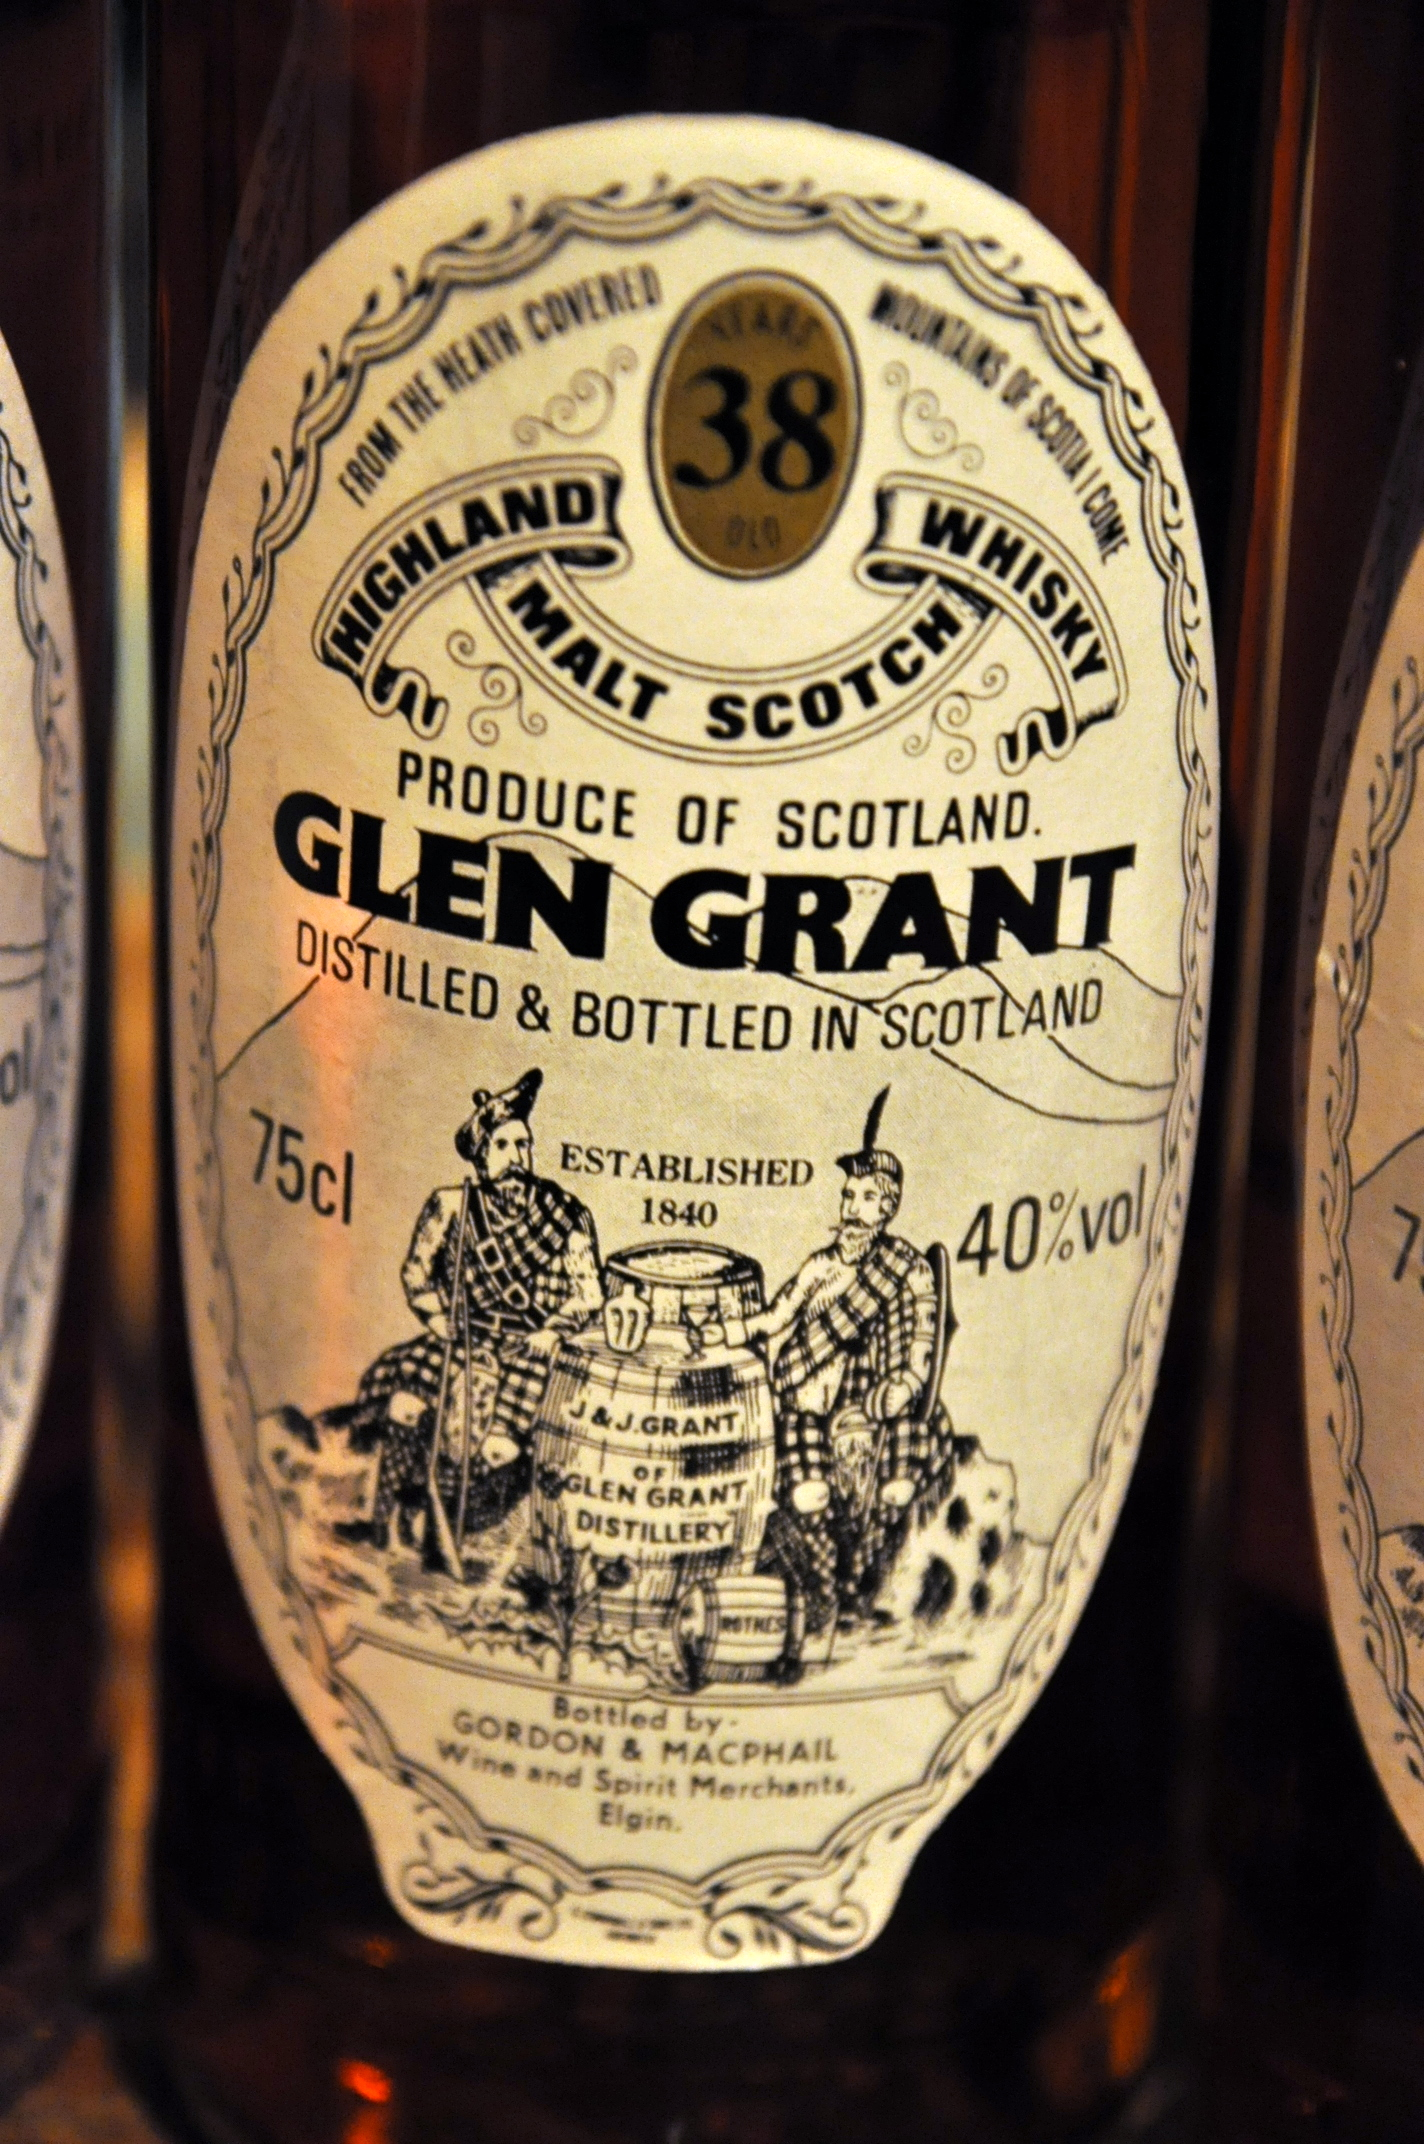 グレングラント Glen Grant 1949 38yo (40%, G&M Licensed bottling for Sestante, 75cl)